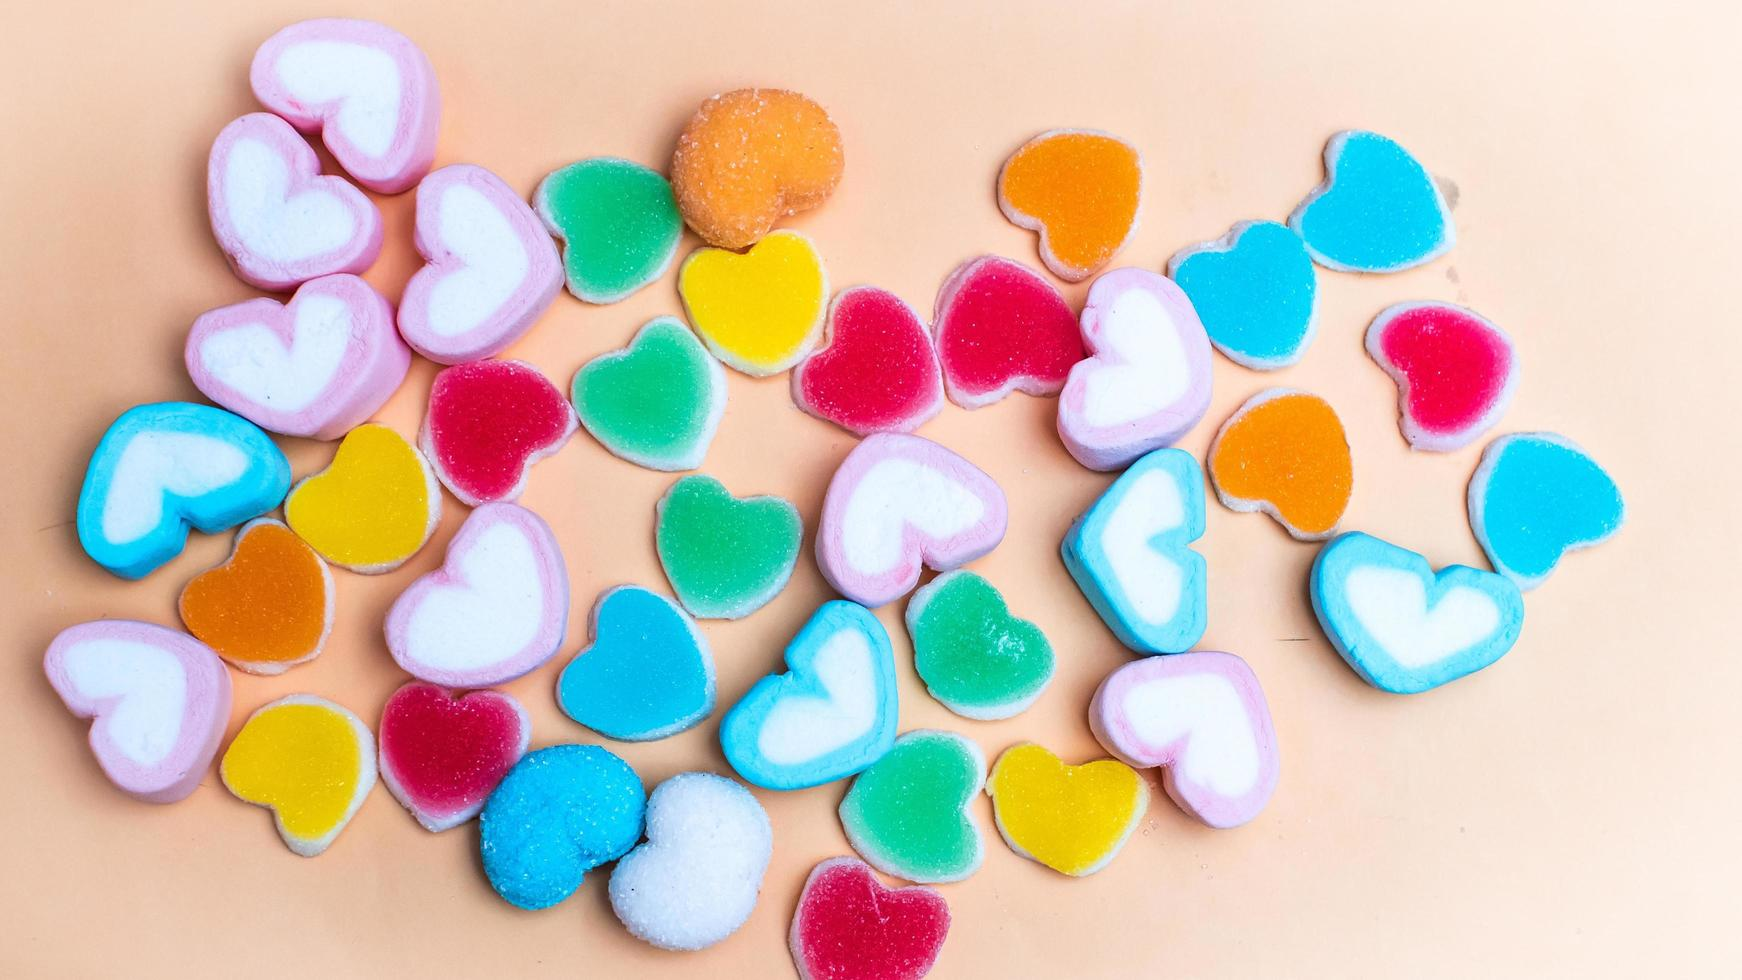 Colorful heart shaped candies photo